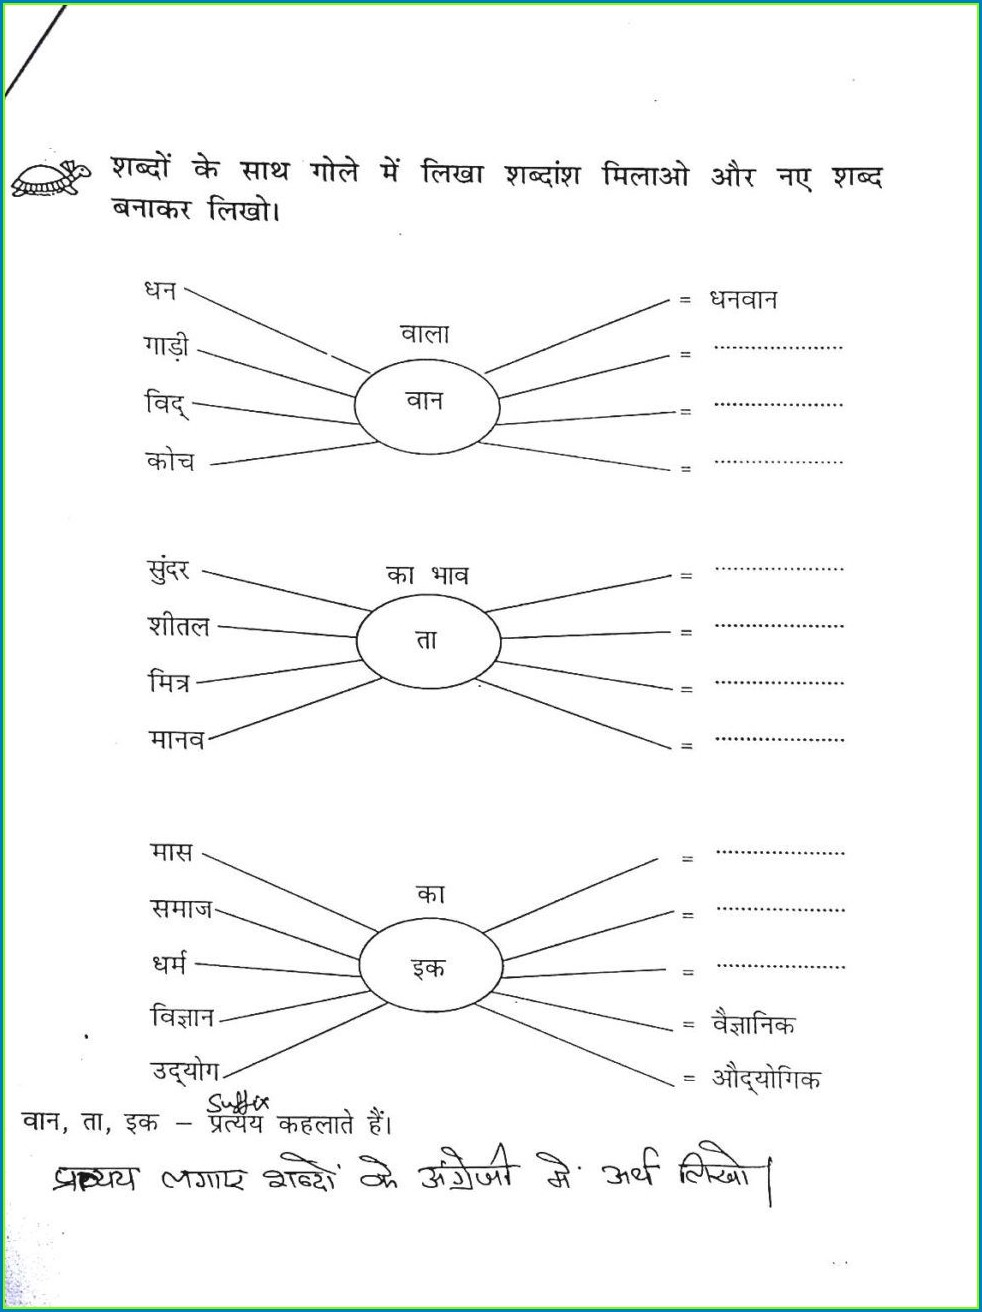 Grade 1 2nd Grade 1 Hindi Worksheet